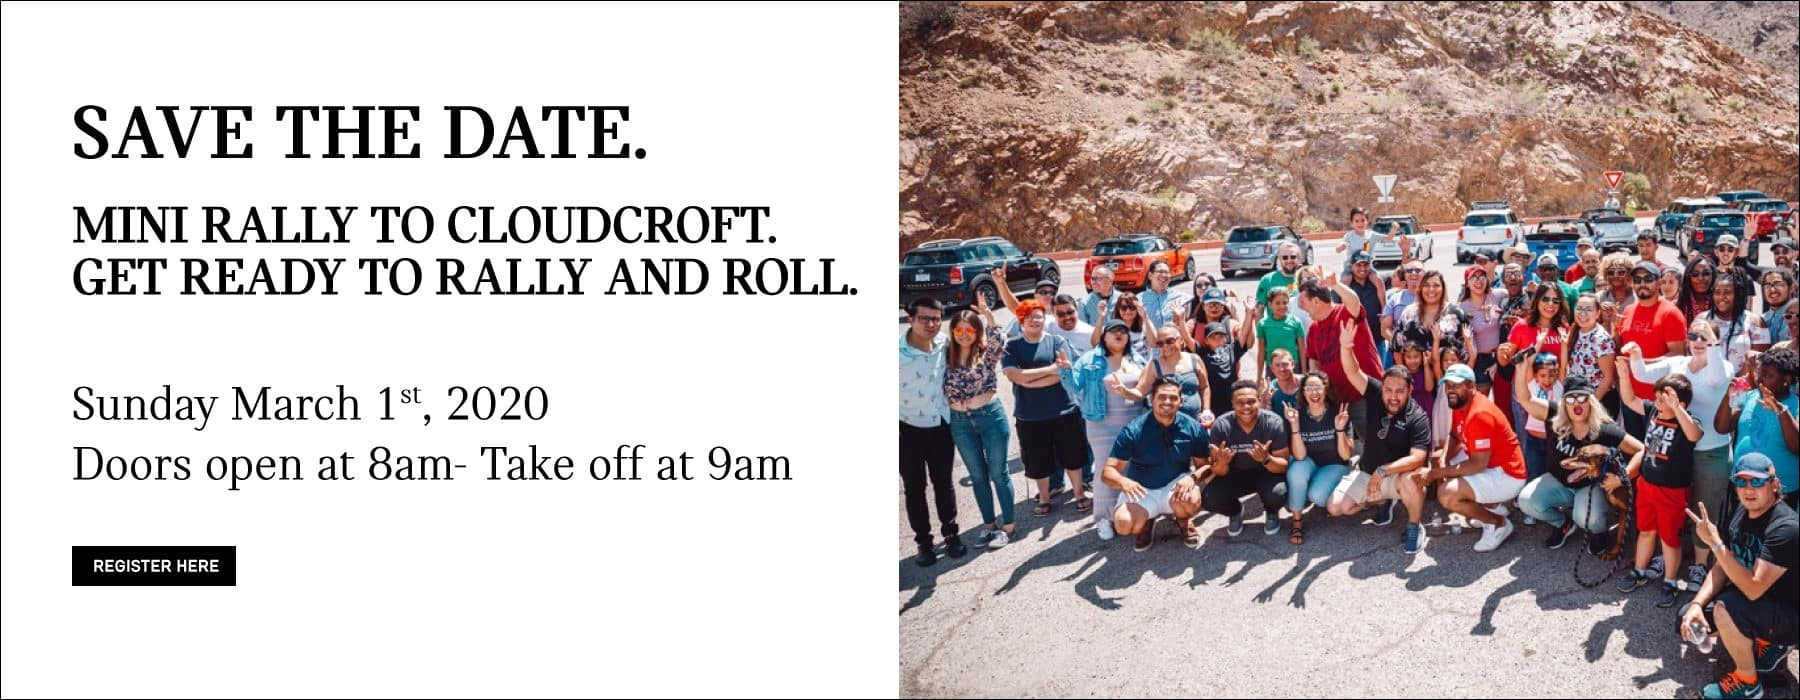 MINI RALLY TO CLOUDCROFT GET READY TO RALLY AND ROLL. SAVE THE DATE FOR SUNDAY, MARCH 1ST. DOORS OPEN AT 8AM TAKE OFF AT 9AM